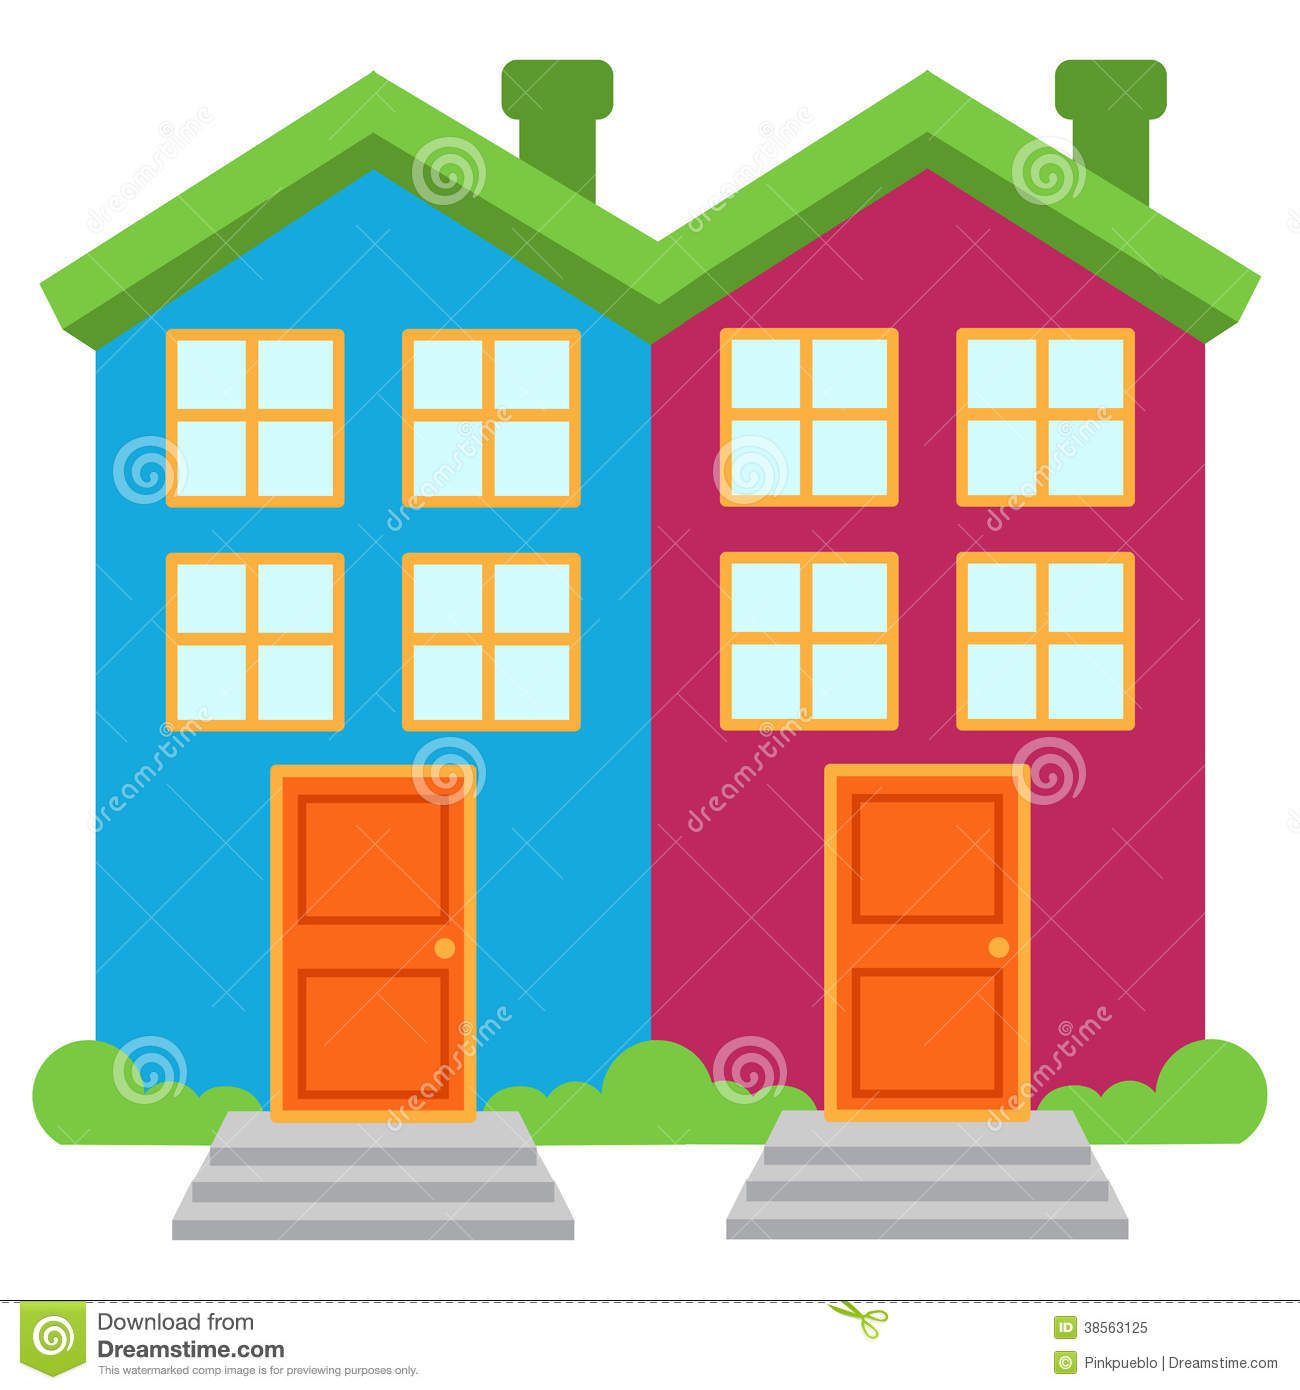 House apartment townhouse clipart.